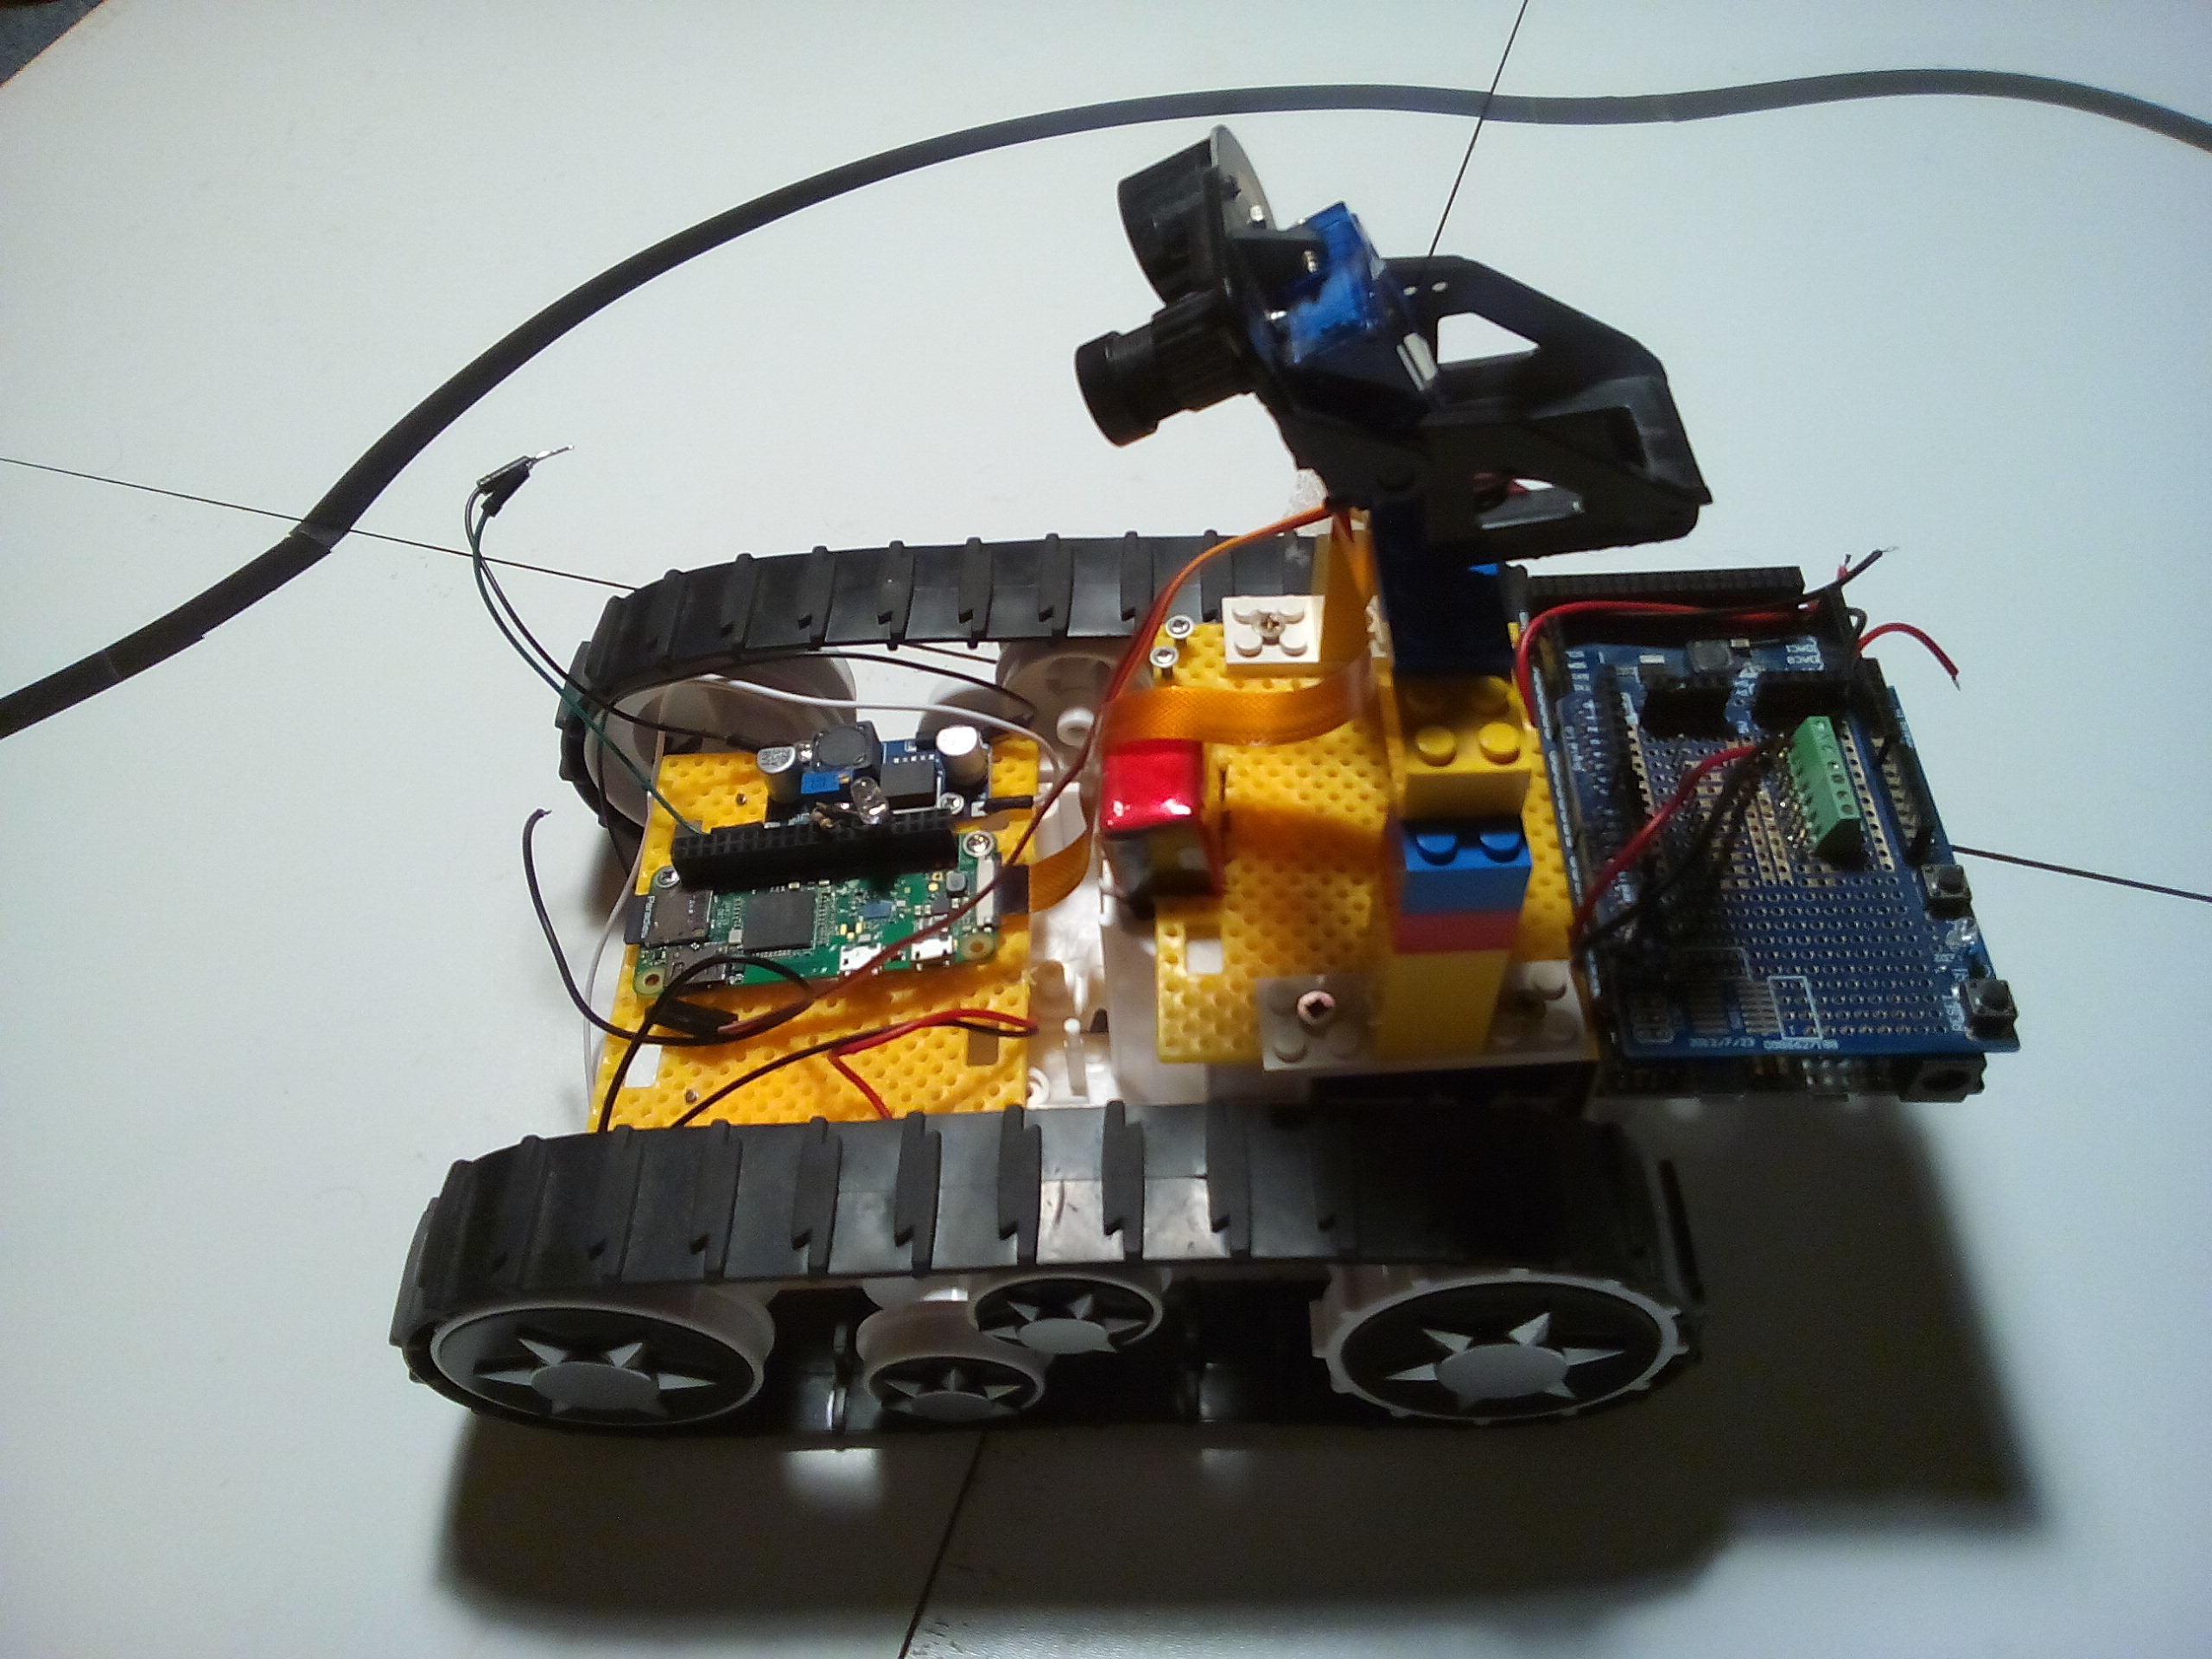 Cheap Caterpillar Robot Platform Restrained At Custom Office Page 3 Wiringpi Pwmwrite Next Step Recabling Pi Zero And Raspberry Due This Time Servo Controlling Camera Gradient Will Be Controlled From Not Arduino